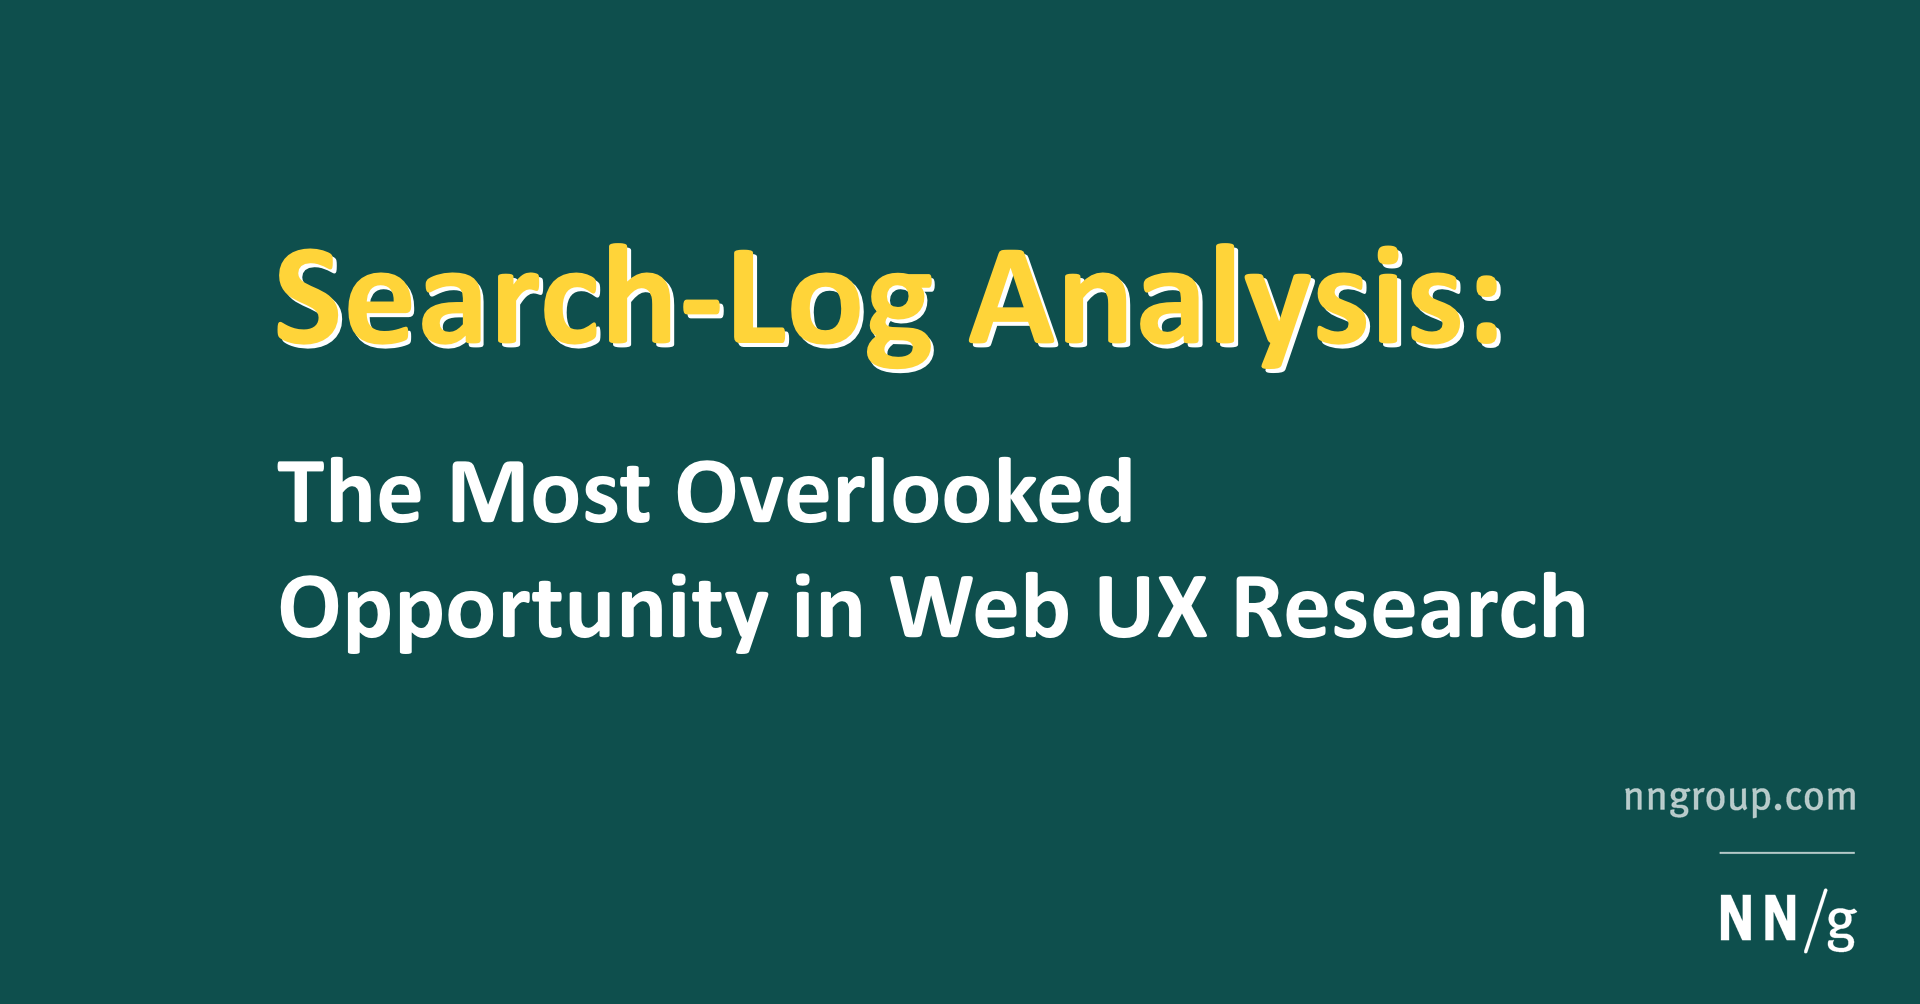 Search-Log Analysis: The Most Overlooked Opportunity in Web UX Research